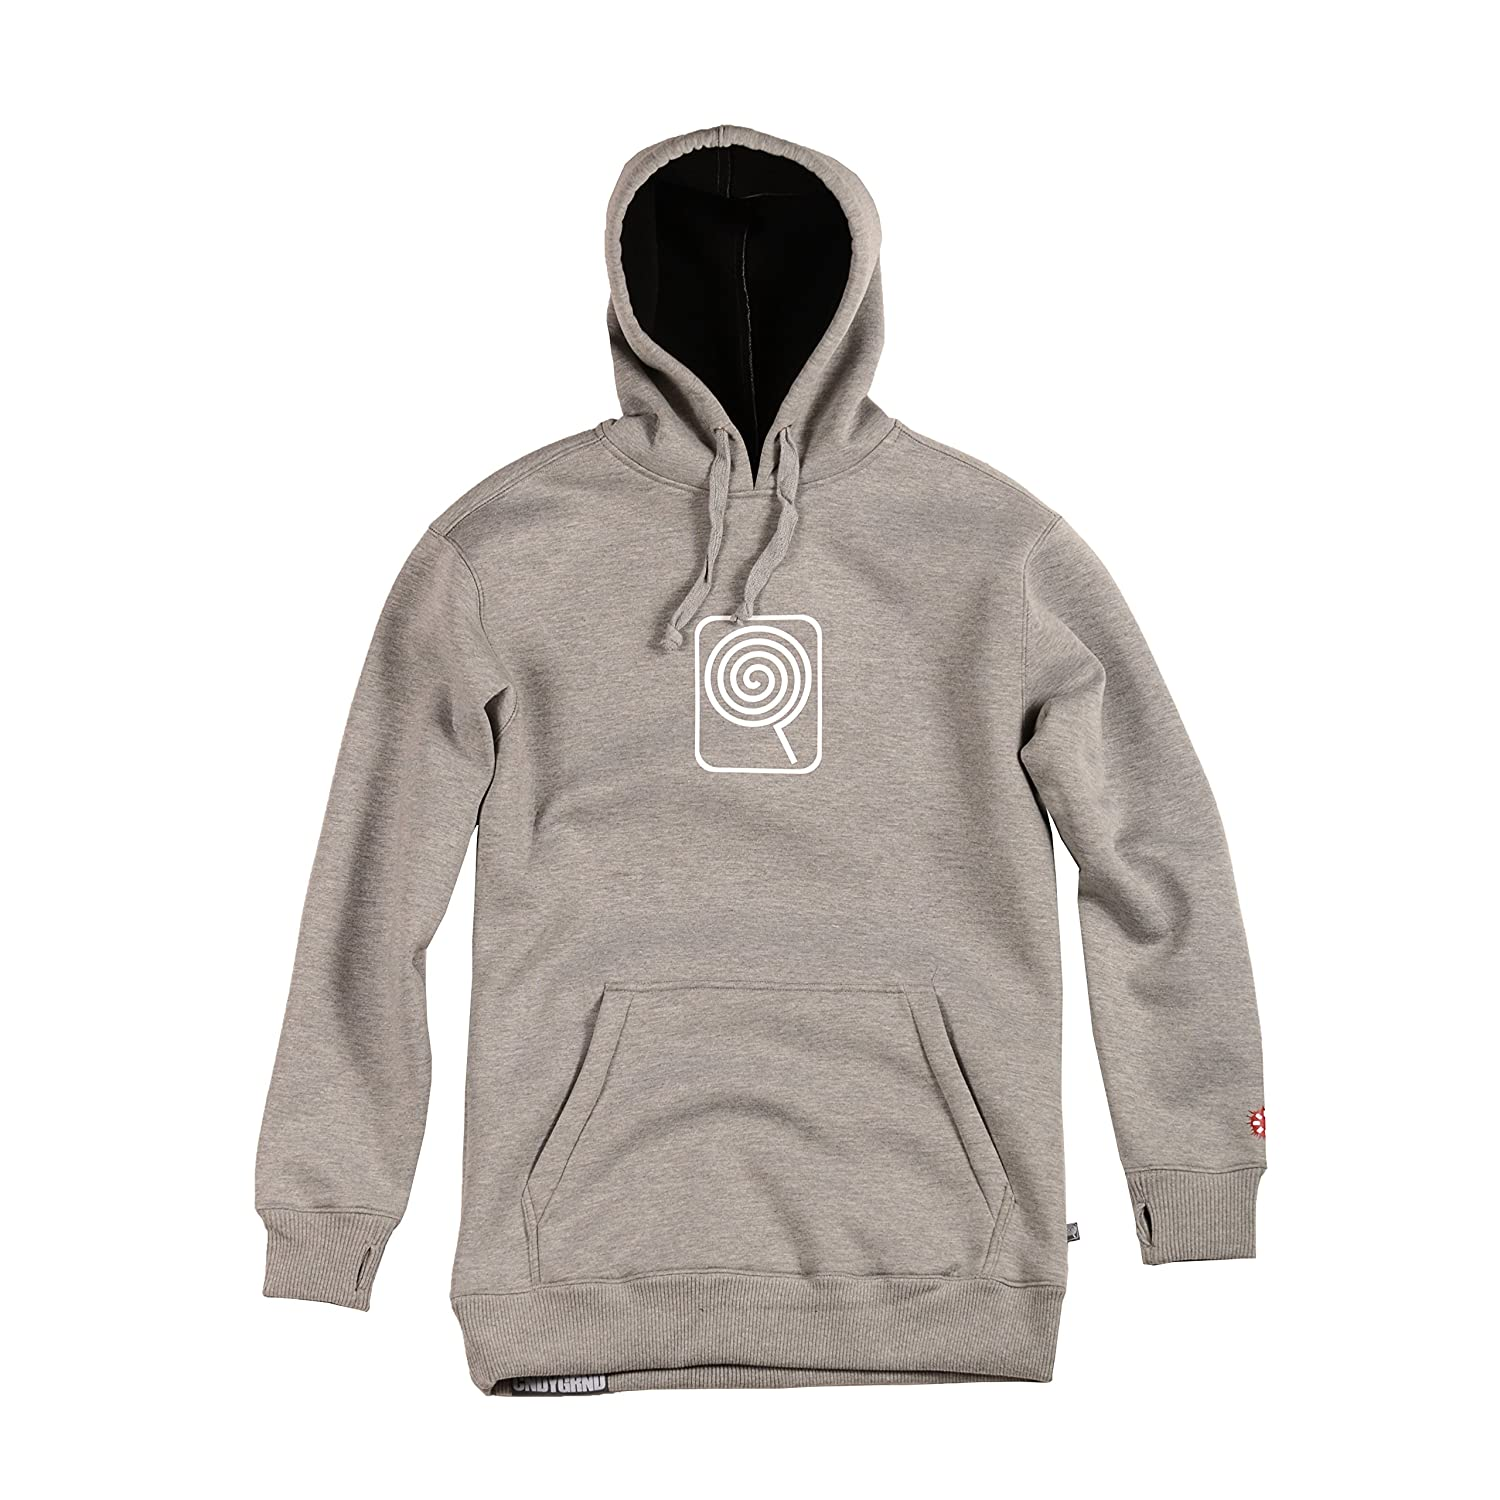 30%OFF CandyGrind Men's Logo DWR Pullover Hoodie